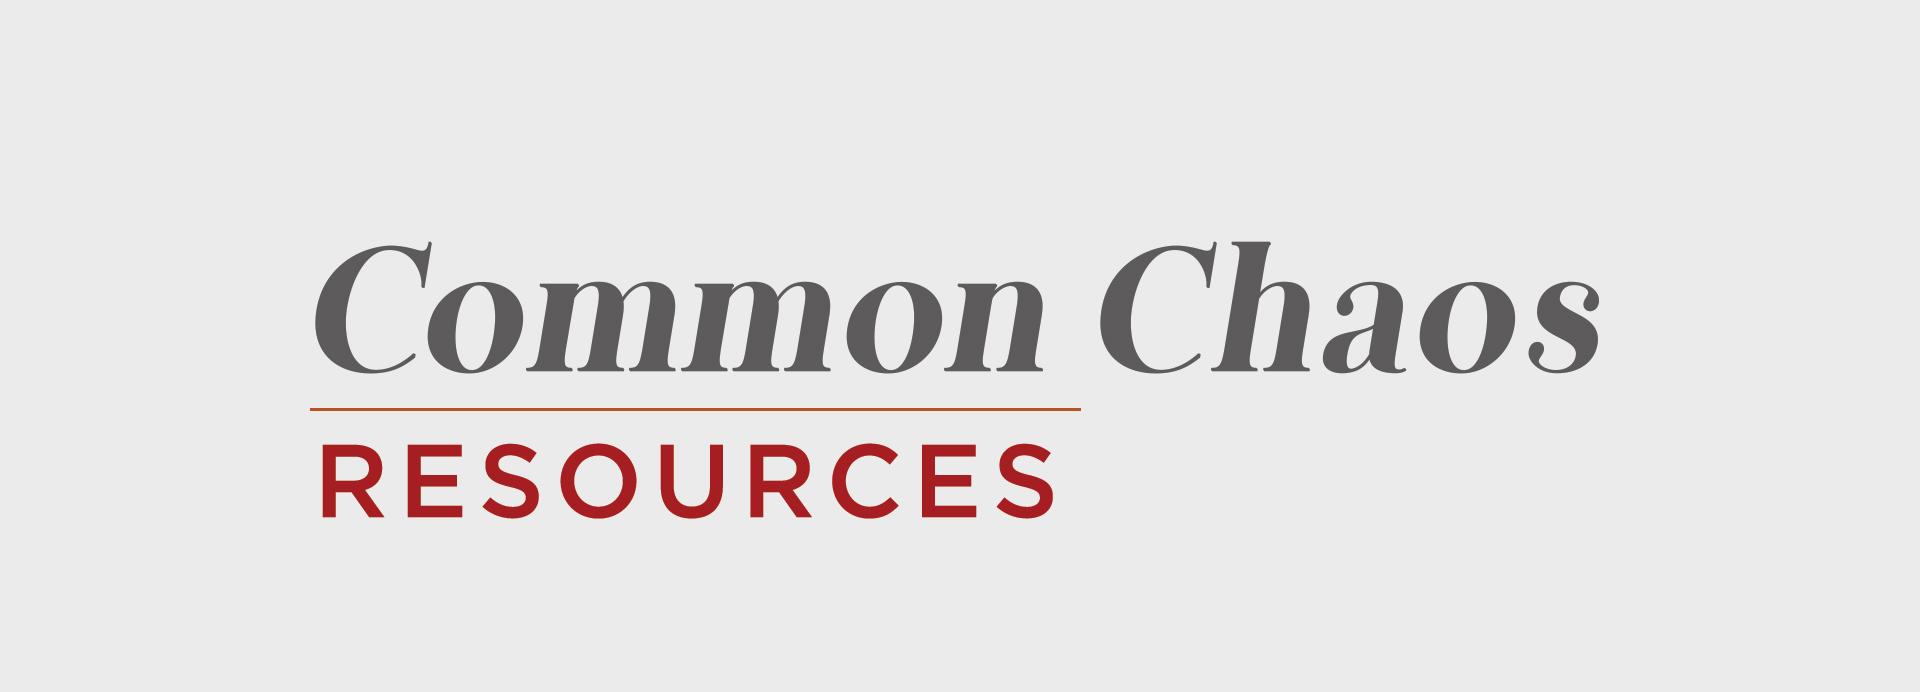 Common Chaos Resources | One Life Network